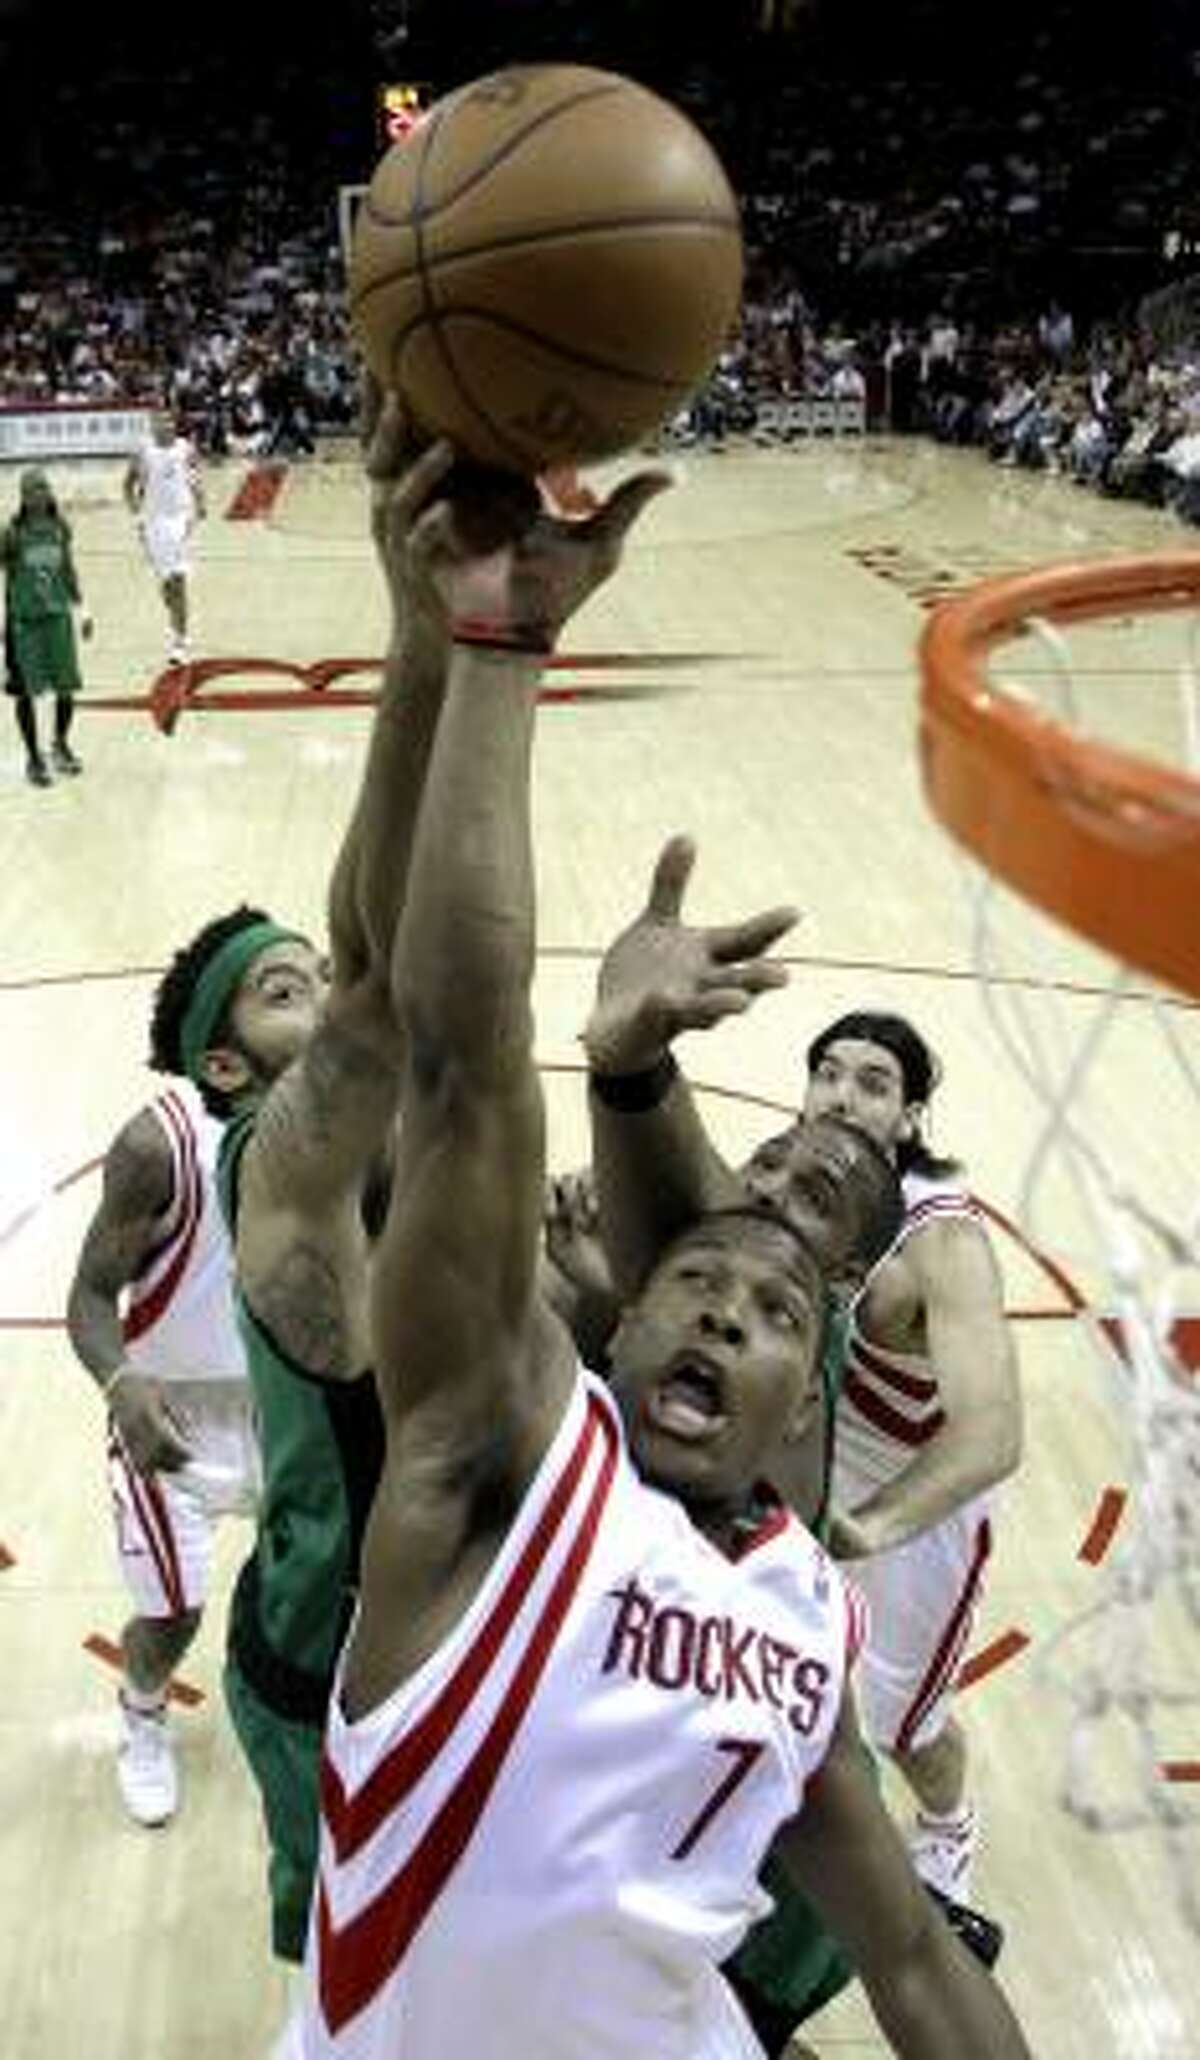 Rockets guard Kyle Lowry goes up for the ball against Celtics forwards Rasheed Wallace, left, and Glen Davis.